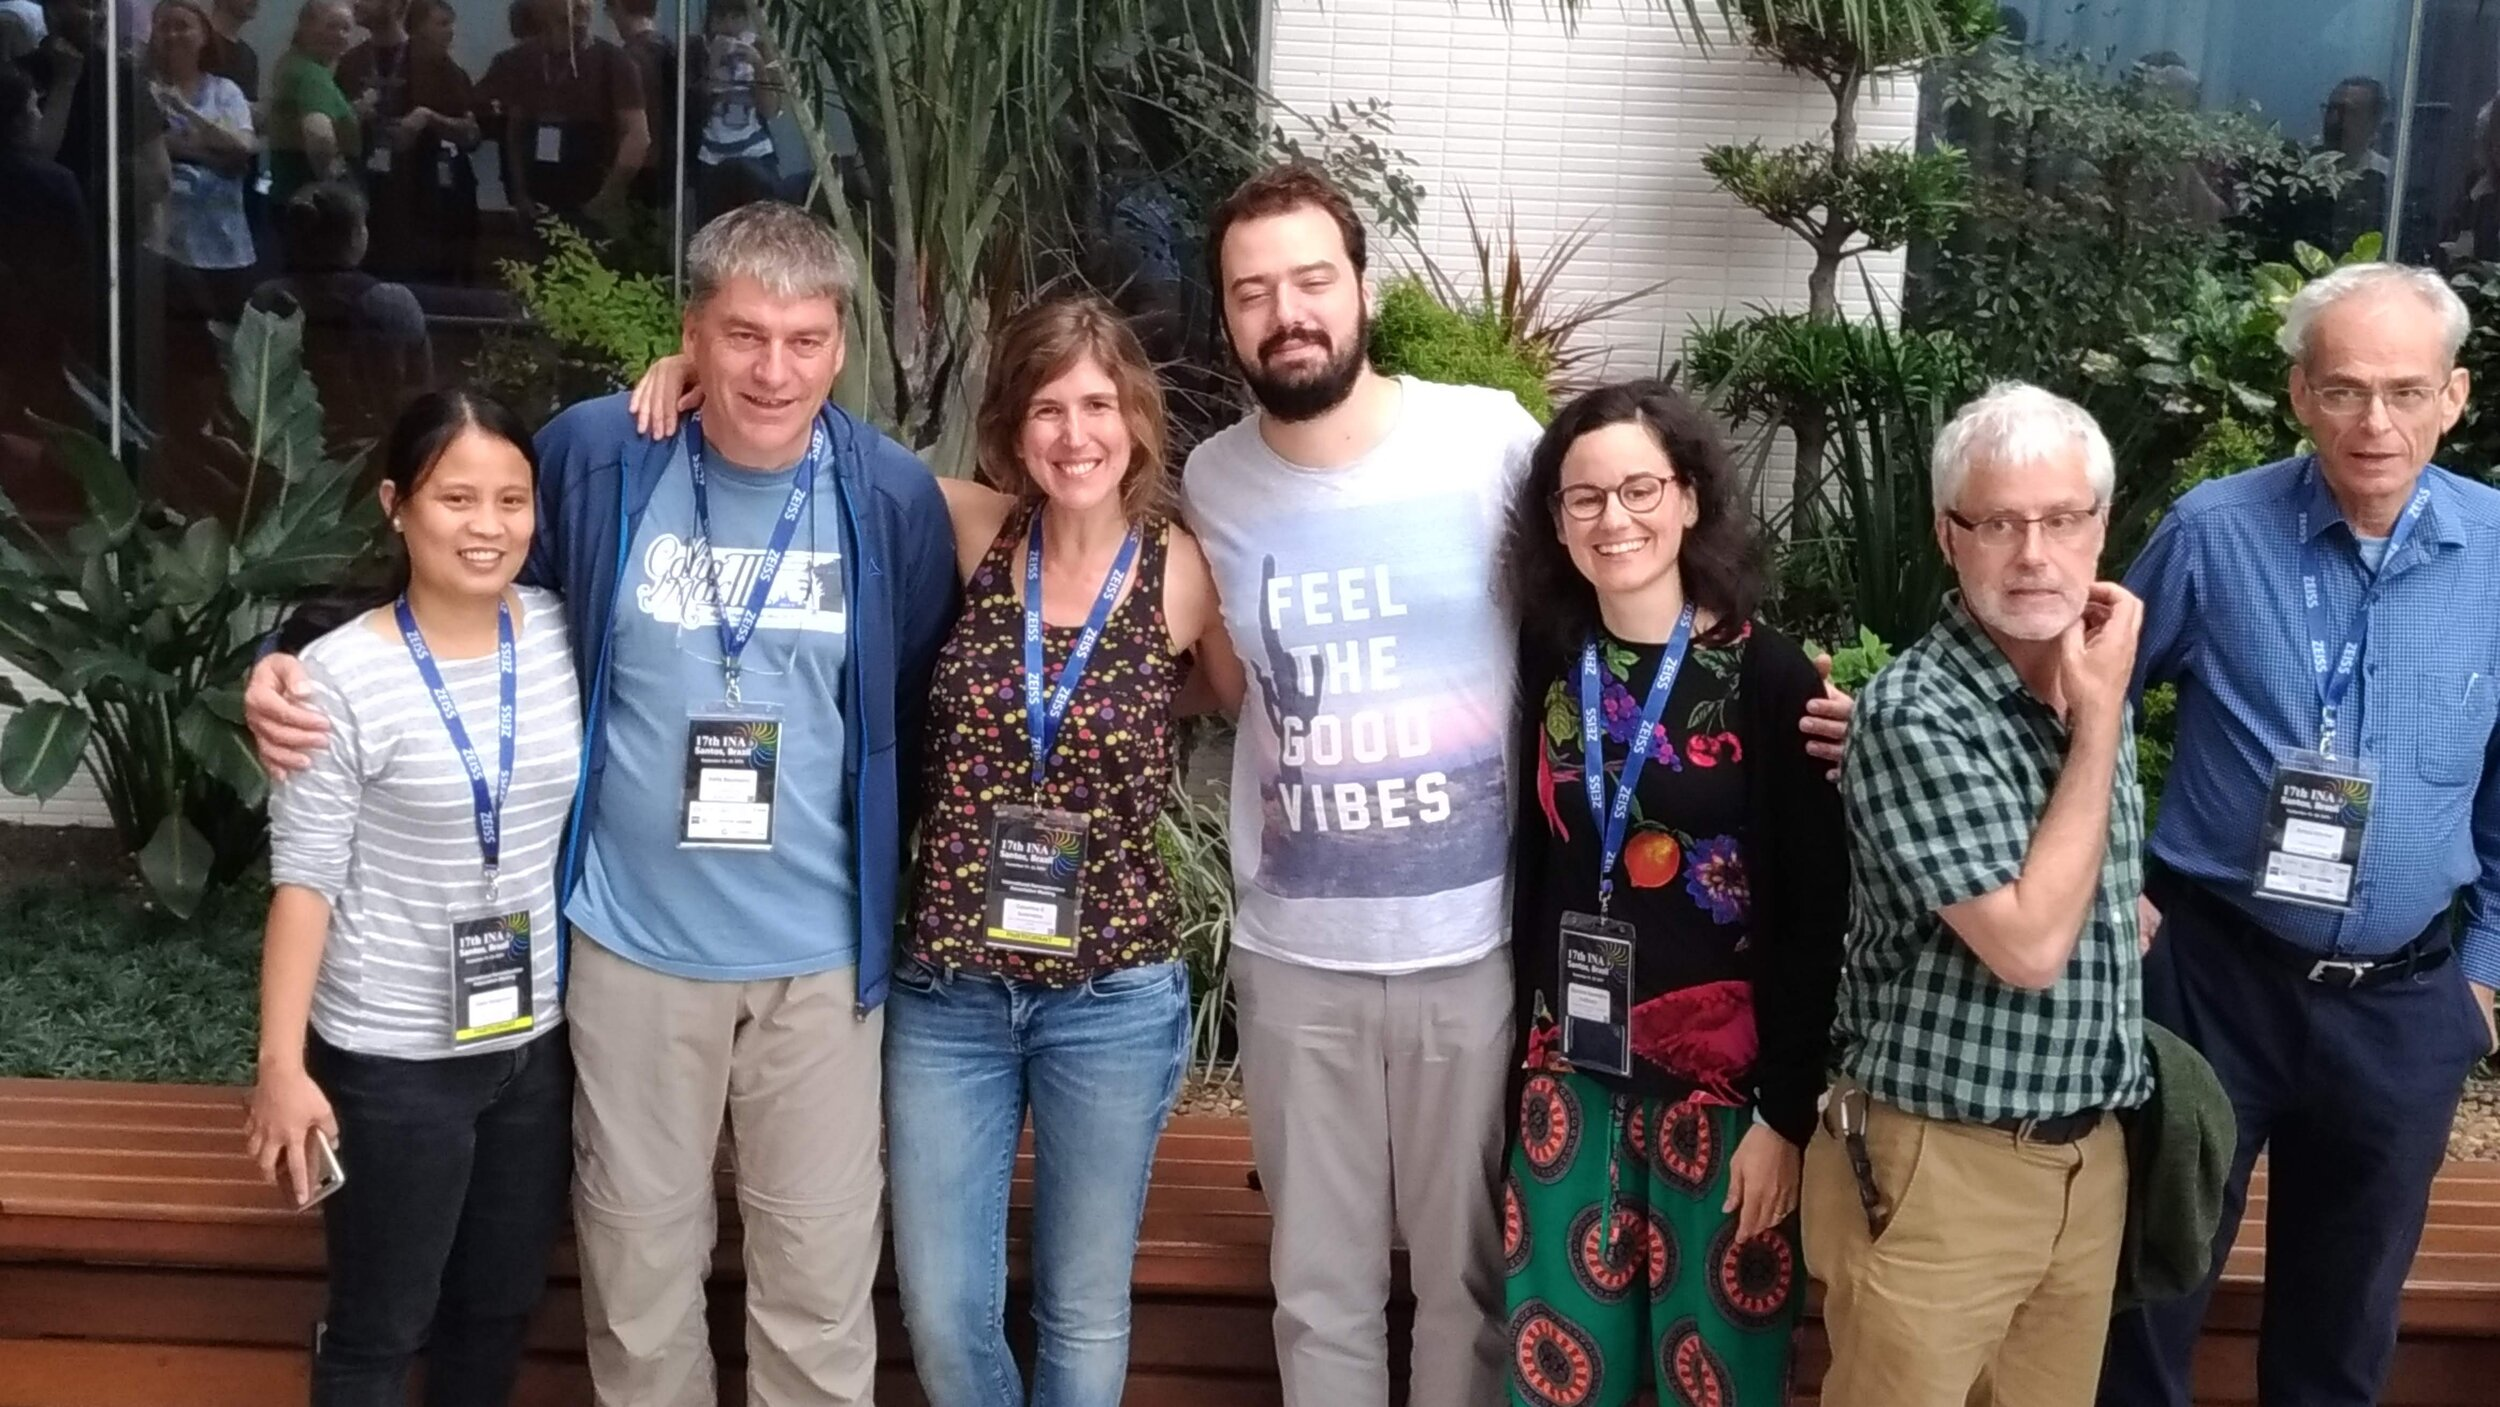 Here is the Uni-Bremen coccolithophore-team (from left to right: Deborah Tangunan, Kalle Baumann, Catarina Guerreiro, Boris Karatsolis and Mariem Saavedra), together with Jeremy Young and Amos Winter.